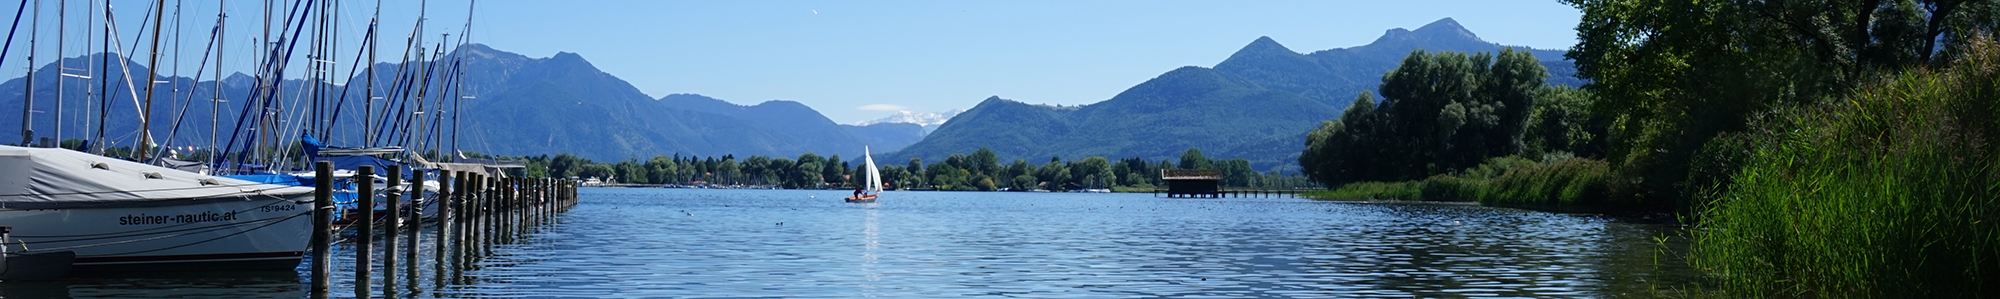 Uferblick am Chiemsee